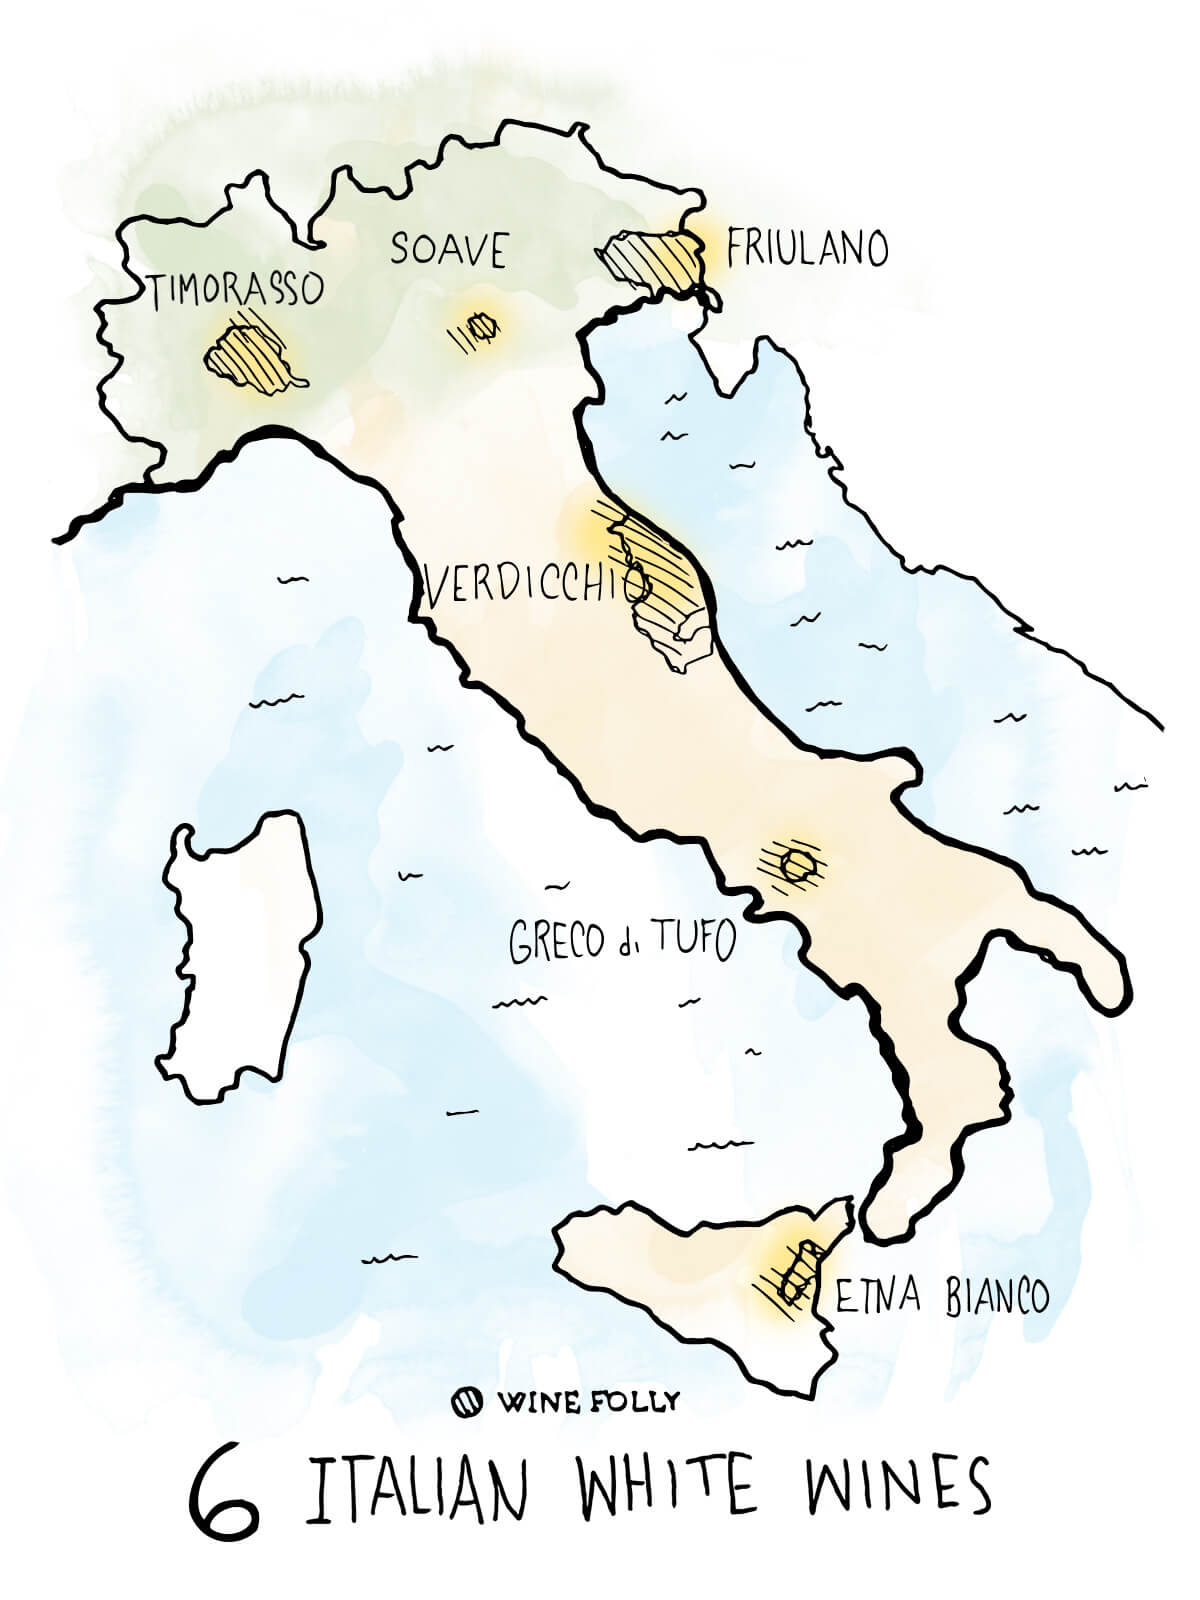 6-italian-white-wines-to-know-map-illustration-winefolly